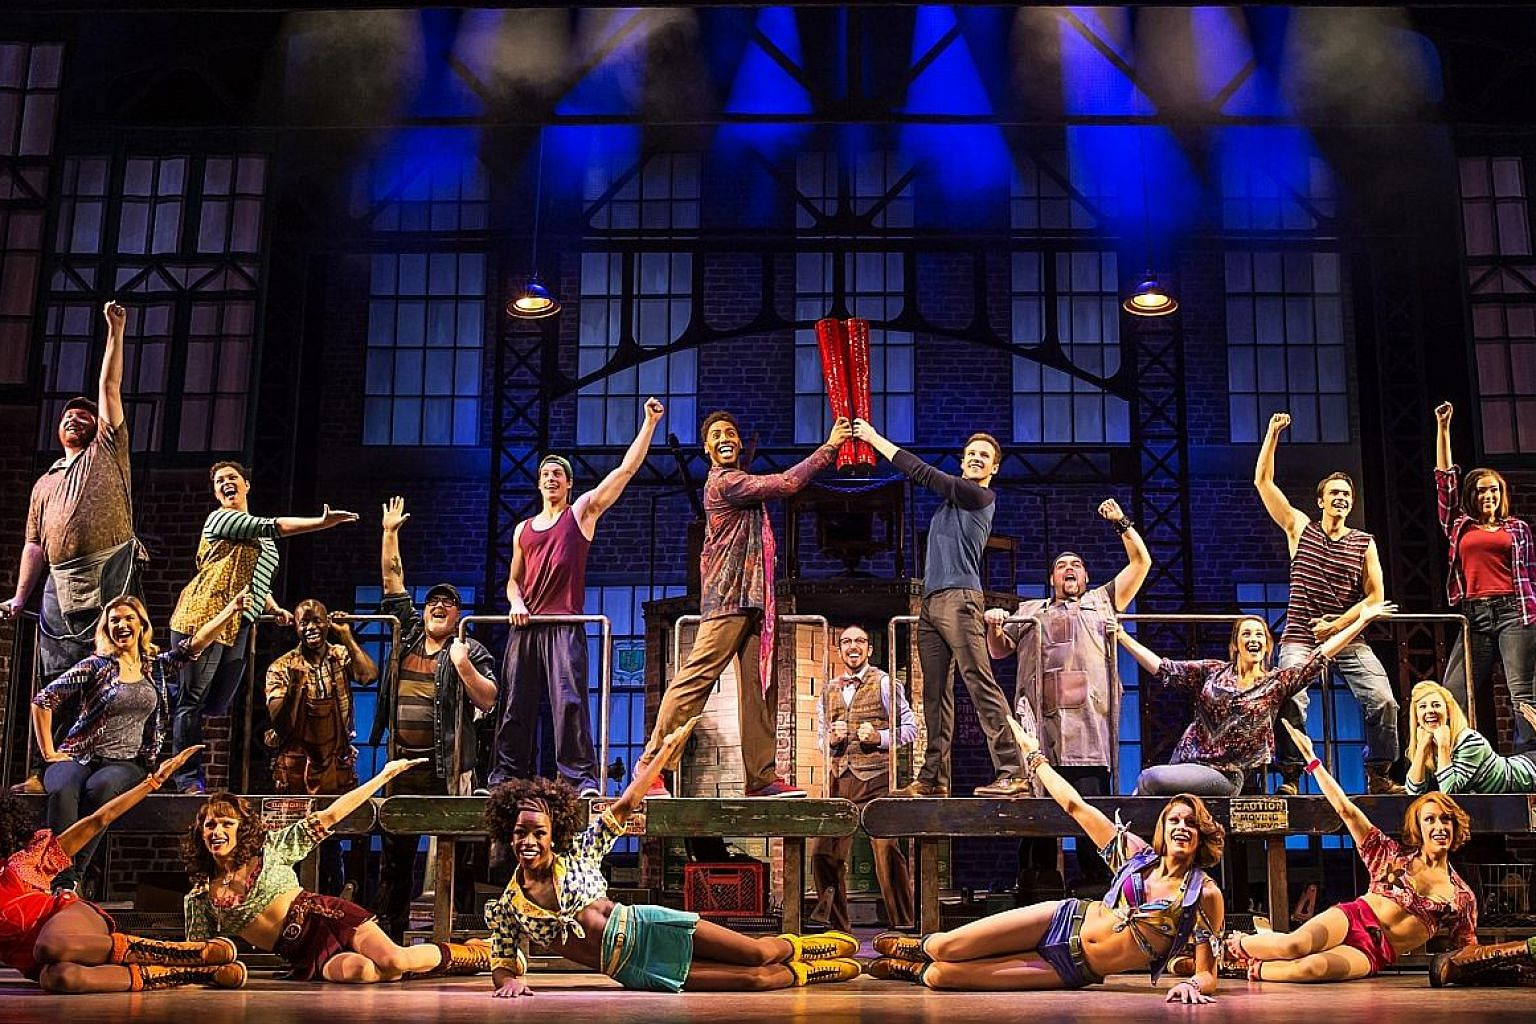 Broadway hit musical Kinky Boots features songs from 1980s music icon Cyndi Lauper. One of the main characters of the show is drag performer Lola (right) played by Jos N. Banks.